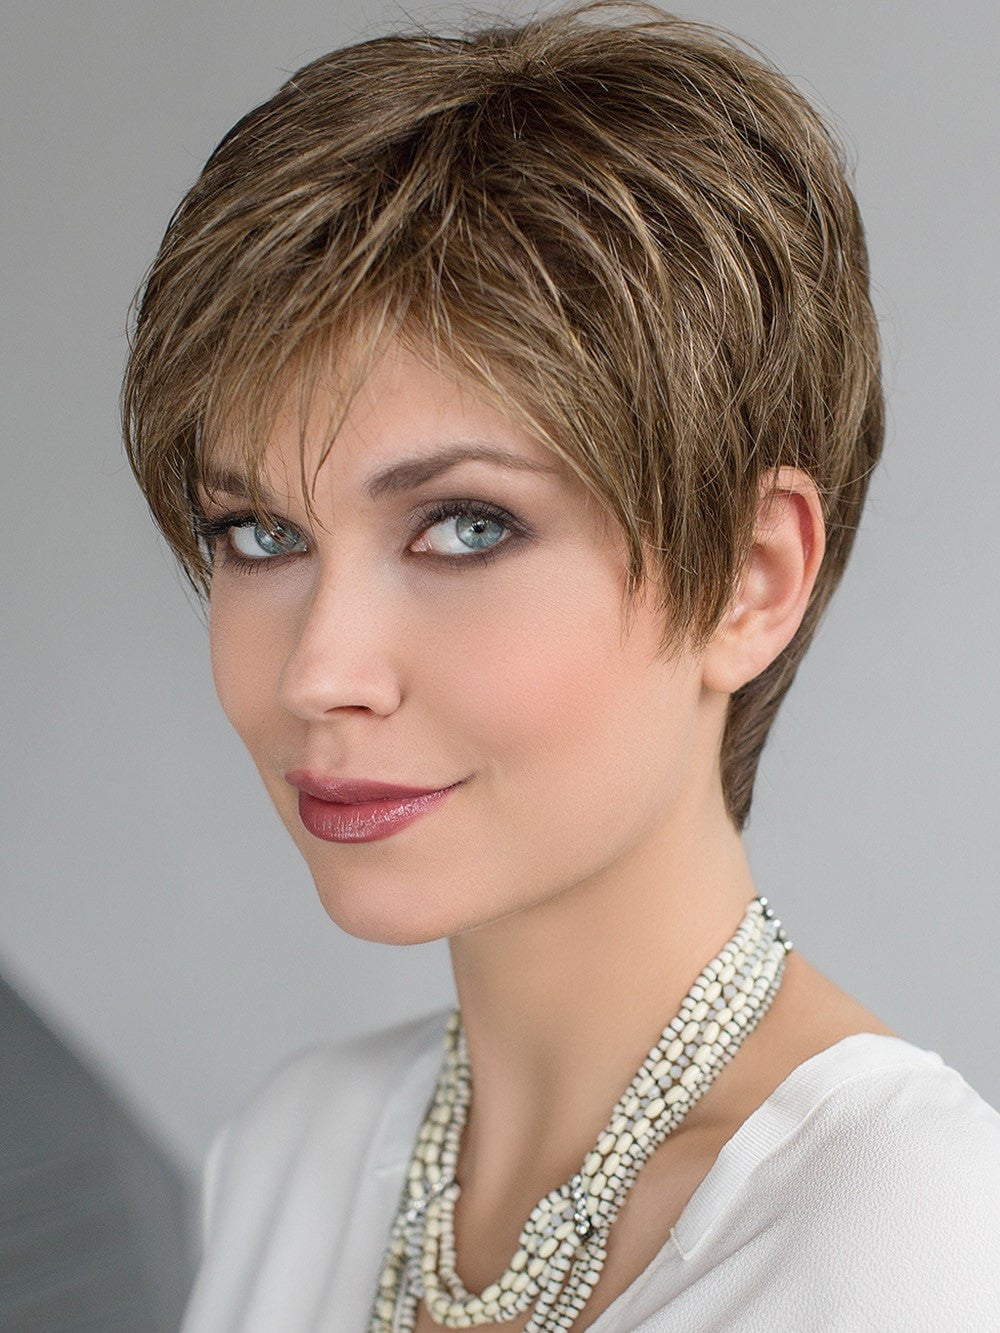 SELECT Wig by Ellen Wille in MOCCA MIX | Medium Brown, Light Brown, and Light Auburn blend